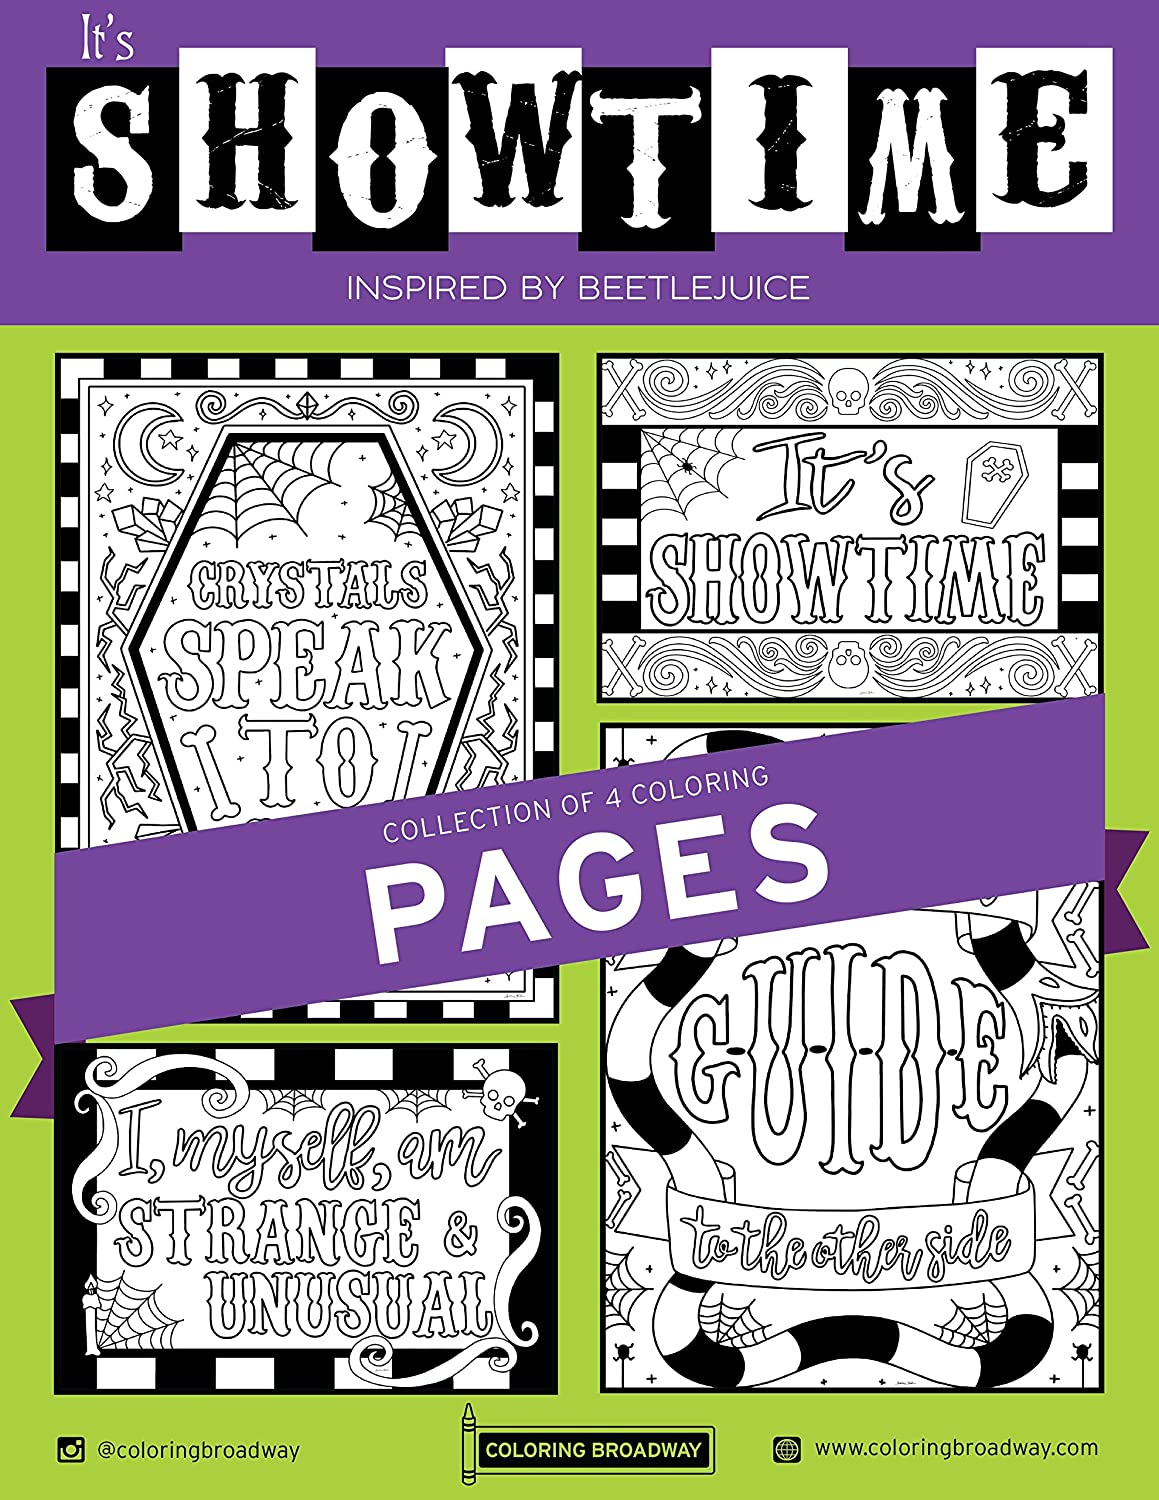 Amazon Com Beetlejuice It S Showtime Collection Coloring Pages By Coloring Broadway Hand Drawn Illustrations Printed On Matte Card Stock 8 5 X 11 Set Of 4 Individual Pages